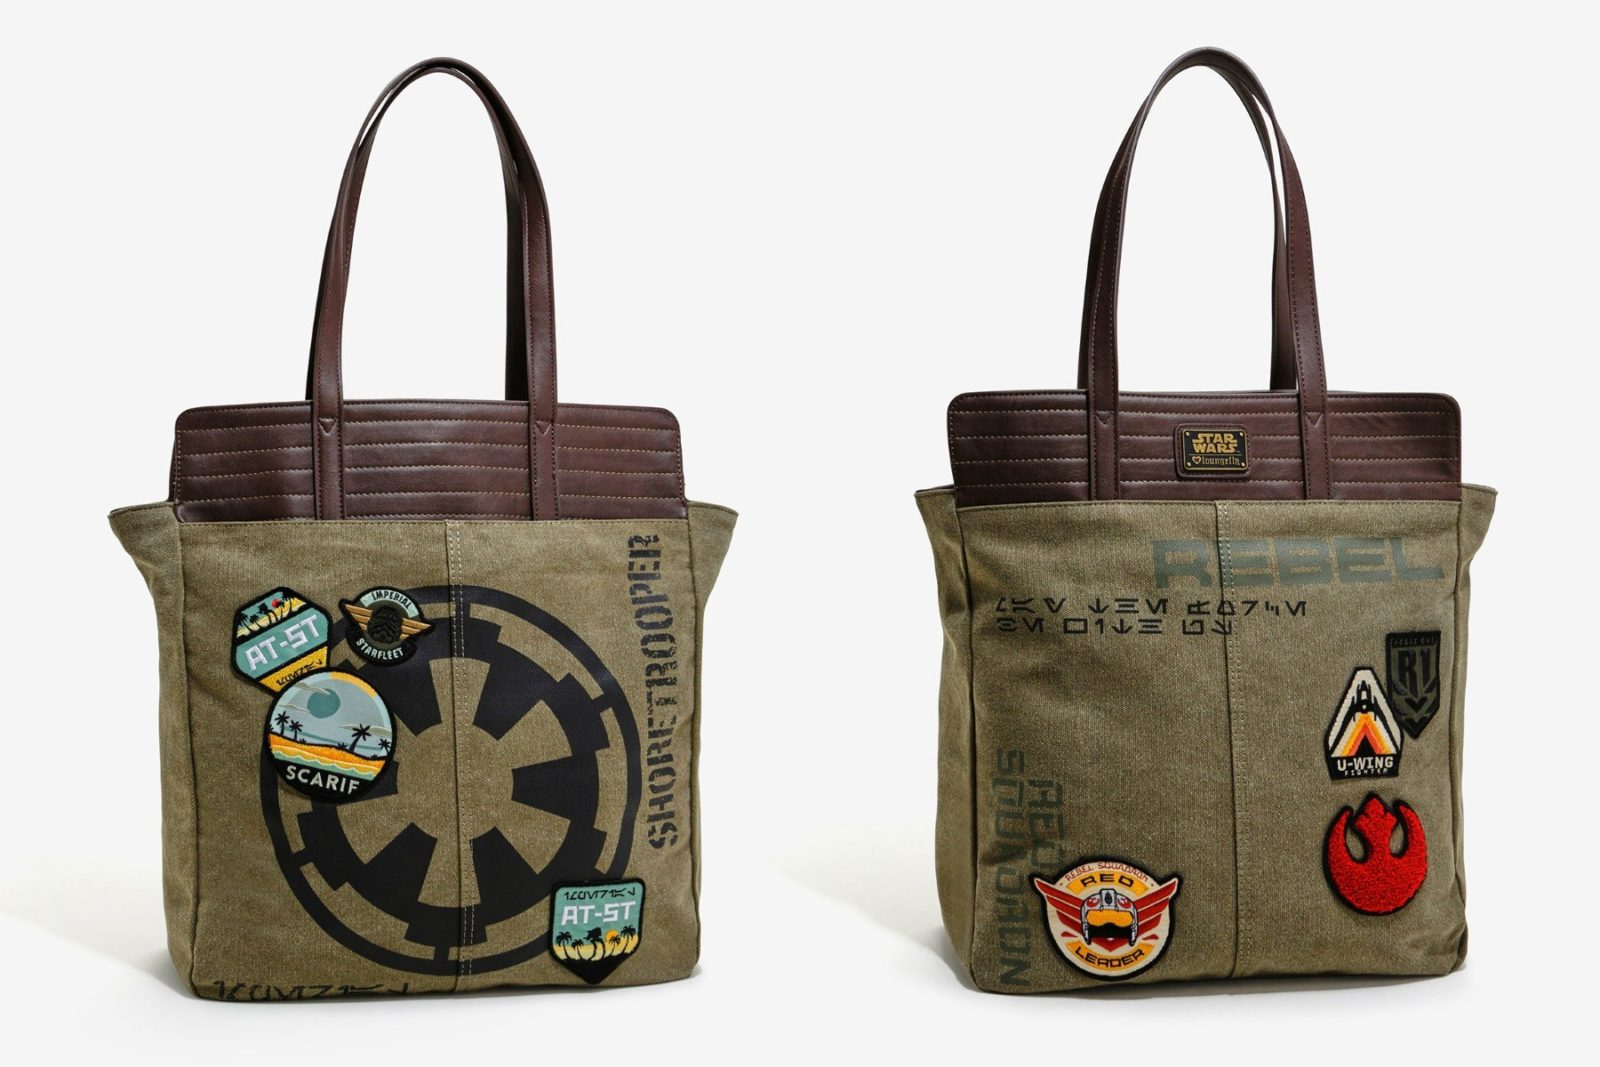 New Loungefly Rogue One tote bag and wallet!